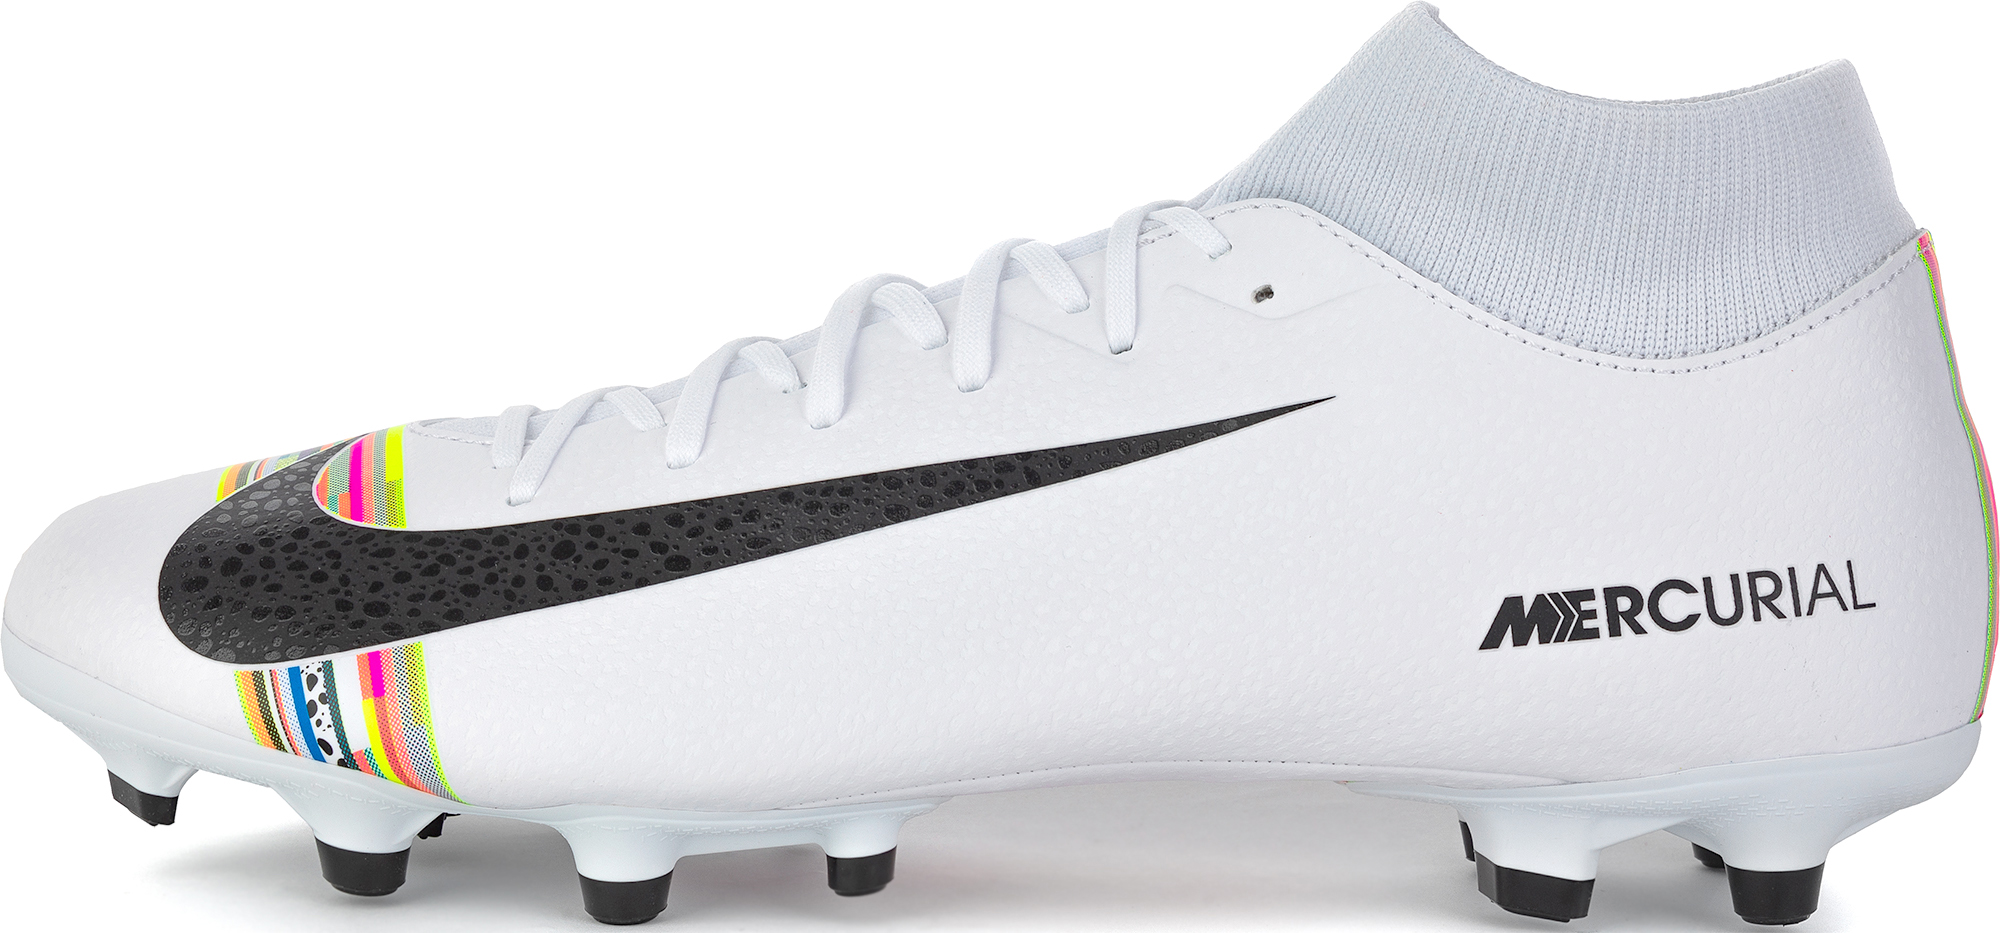 Nike Бутсы мужские Mercurial Superfly 6 Academy CR7 FG/MG, размер 45